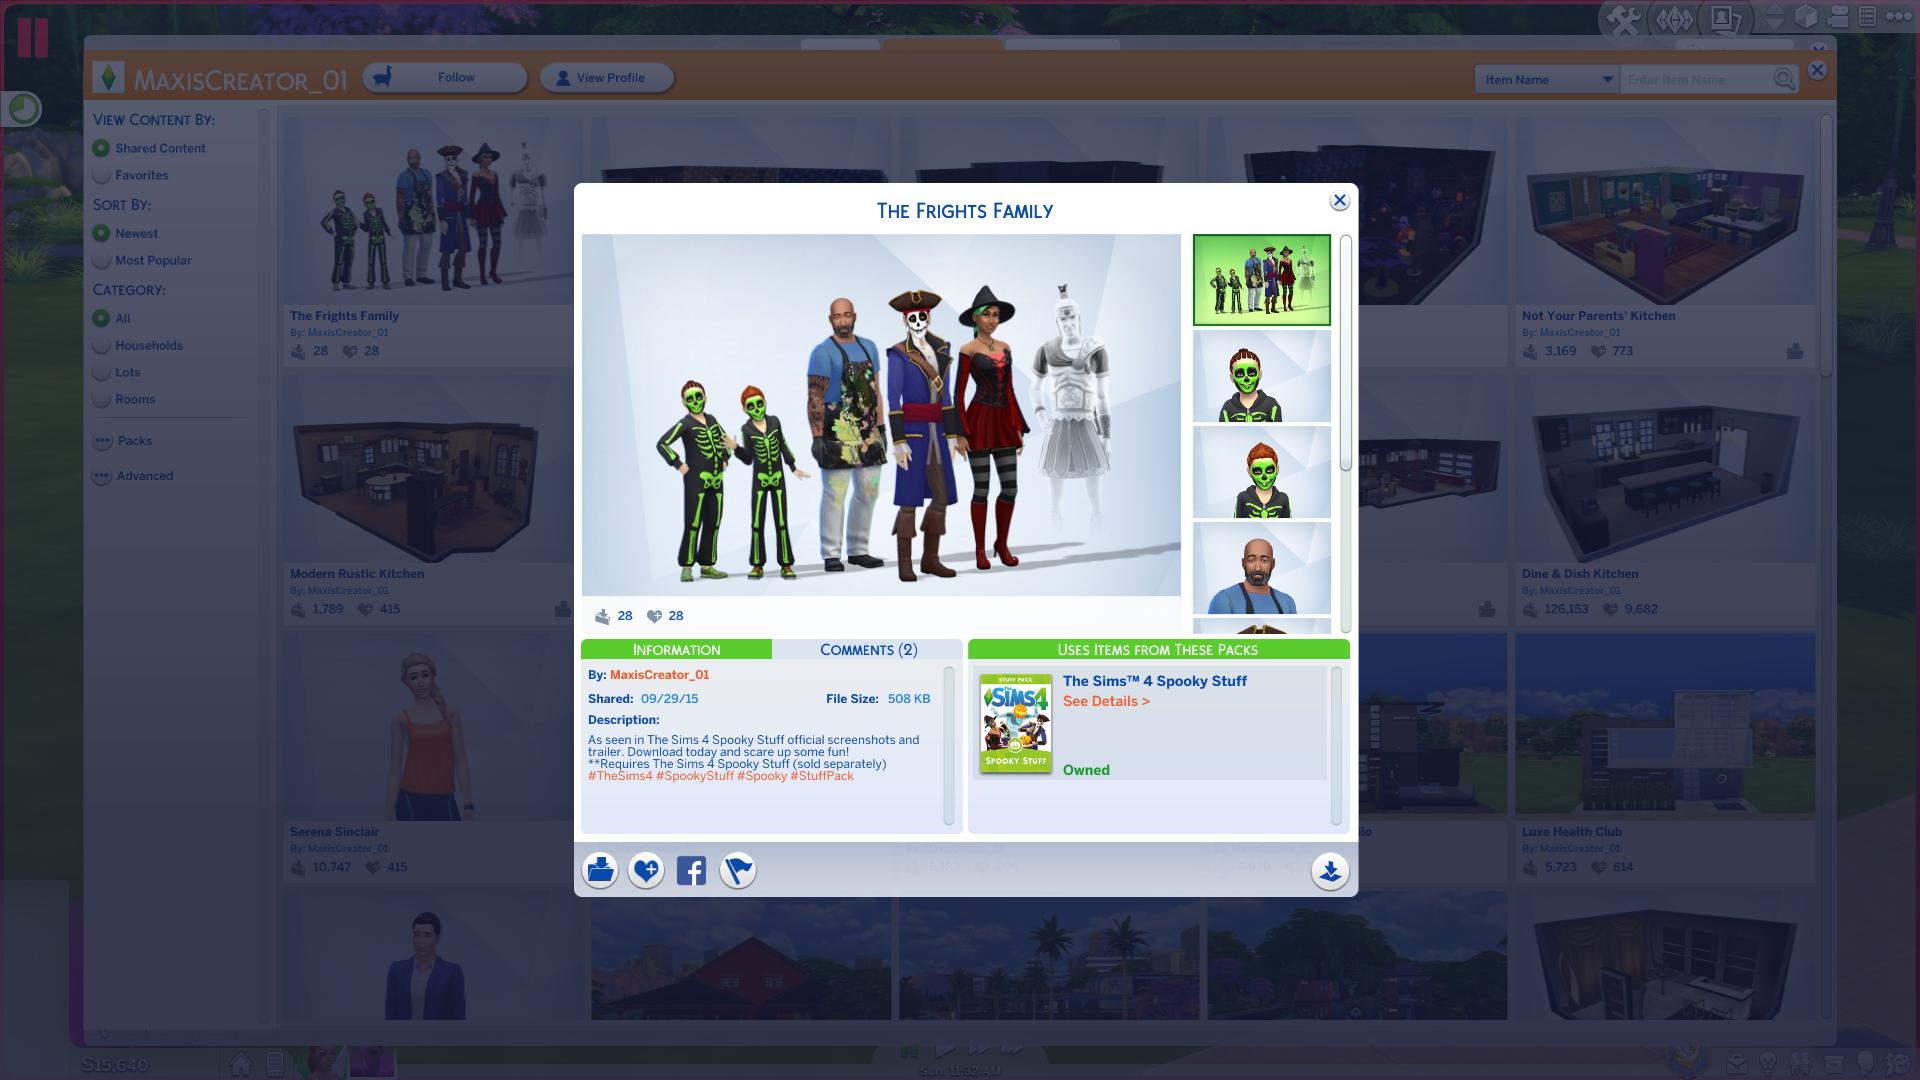 The Sims 4 Spooky Stuff Official Promo Rooms and Household 1920x1080